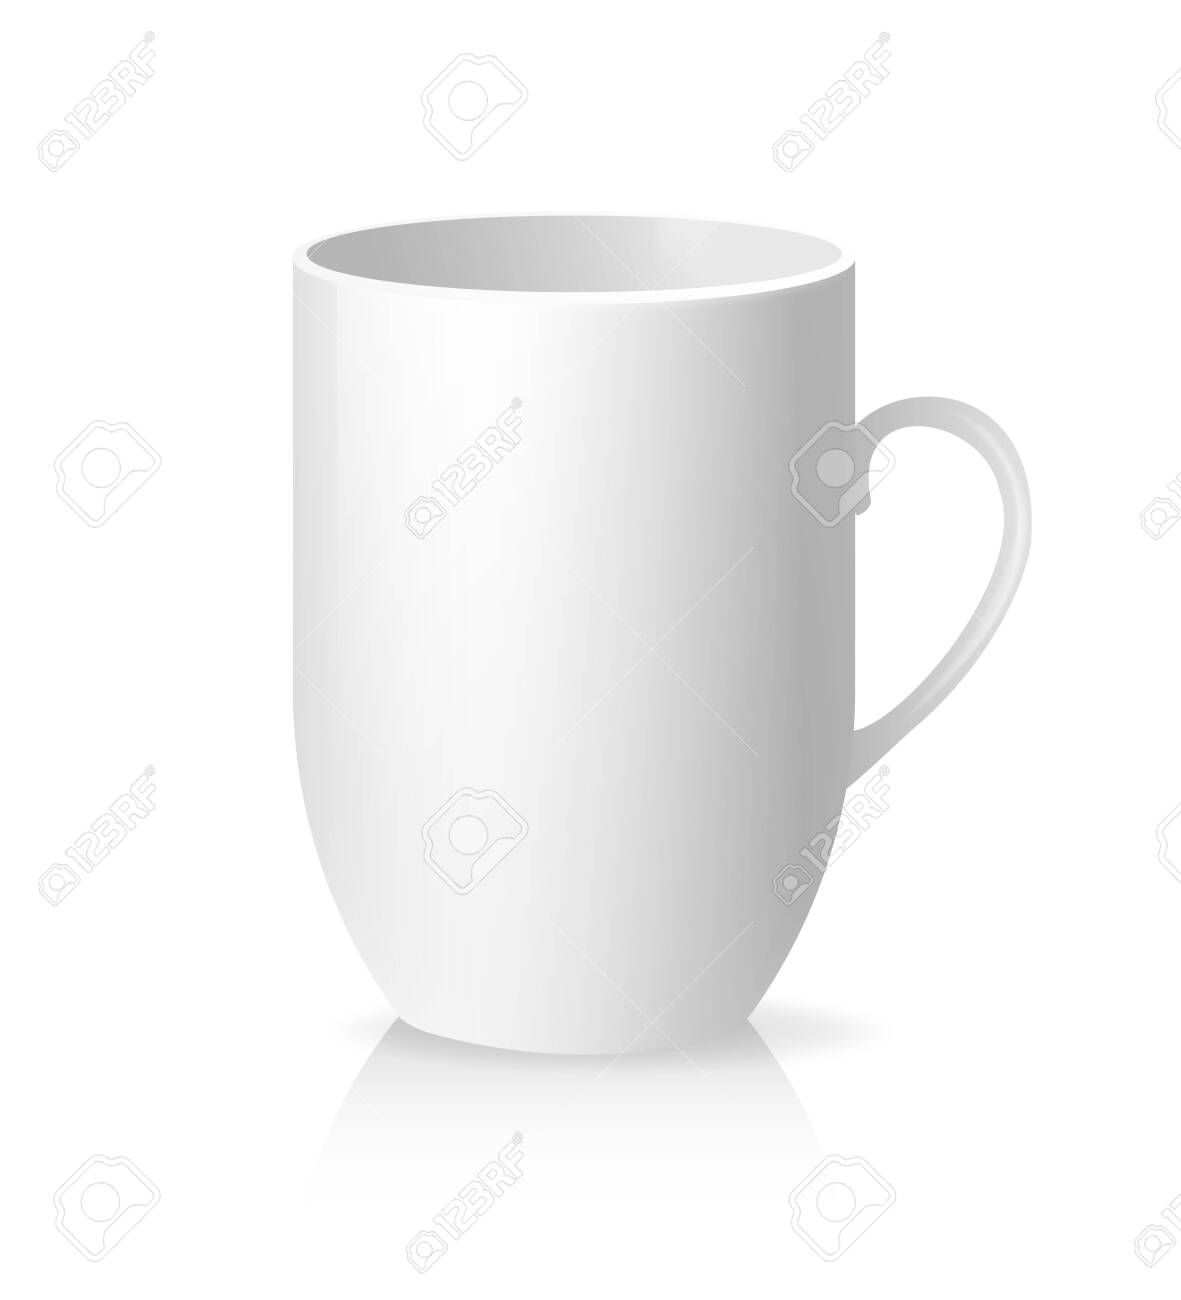 White empty cup in classic style on transparent background. White background. Vector illustration - 155710574